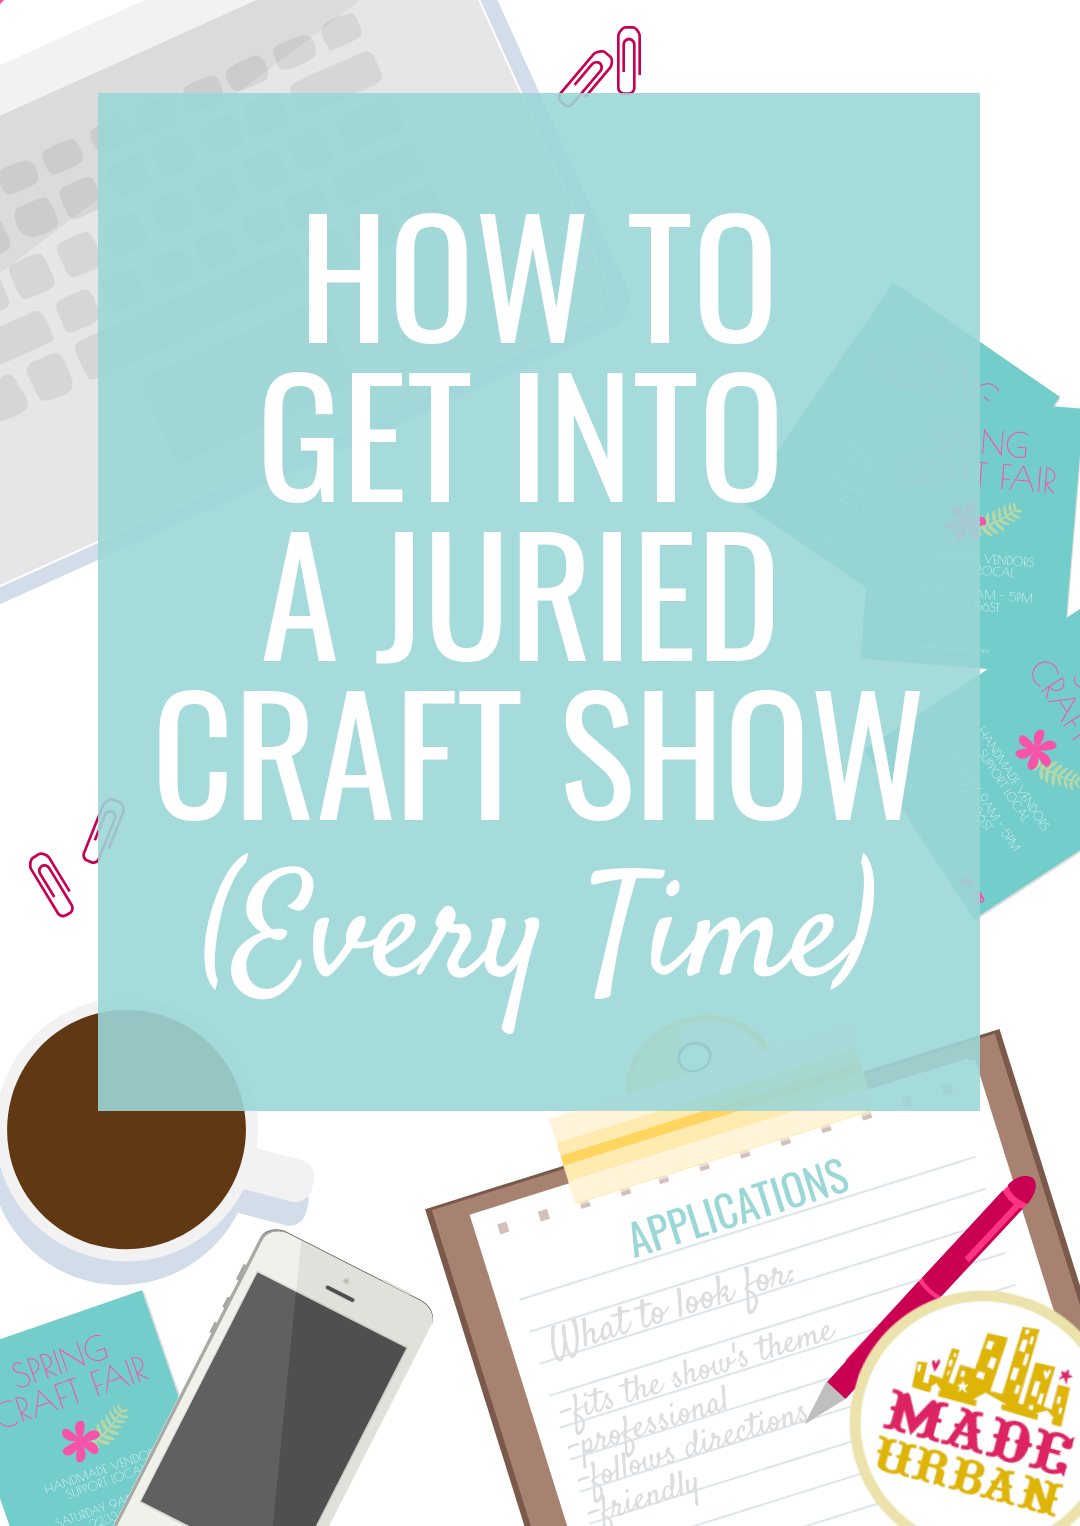 If a juried craft show is competitive, it requires more than simply filling out an application and submitting it. You've got to take things to the next level if you want to stand out from the other applications and get accepted.